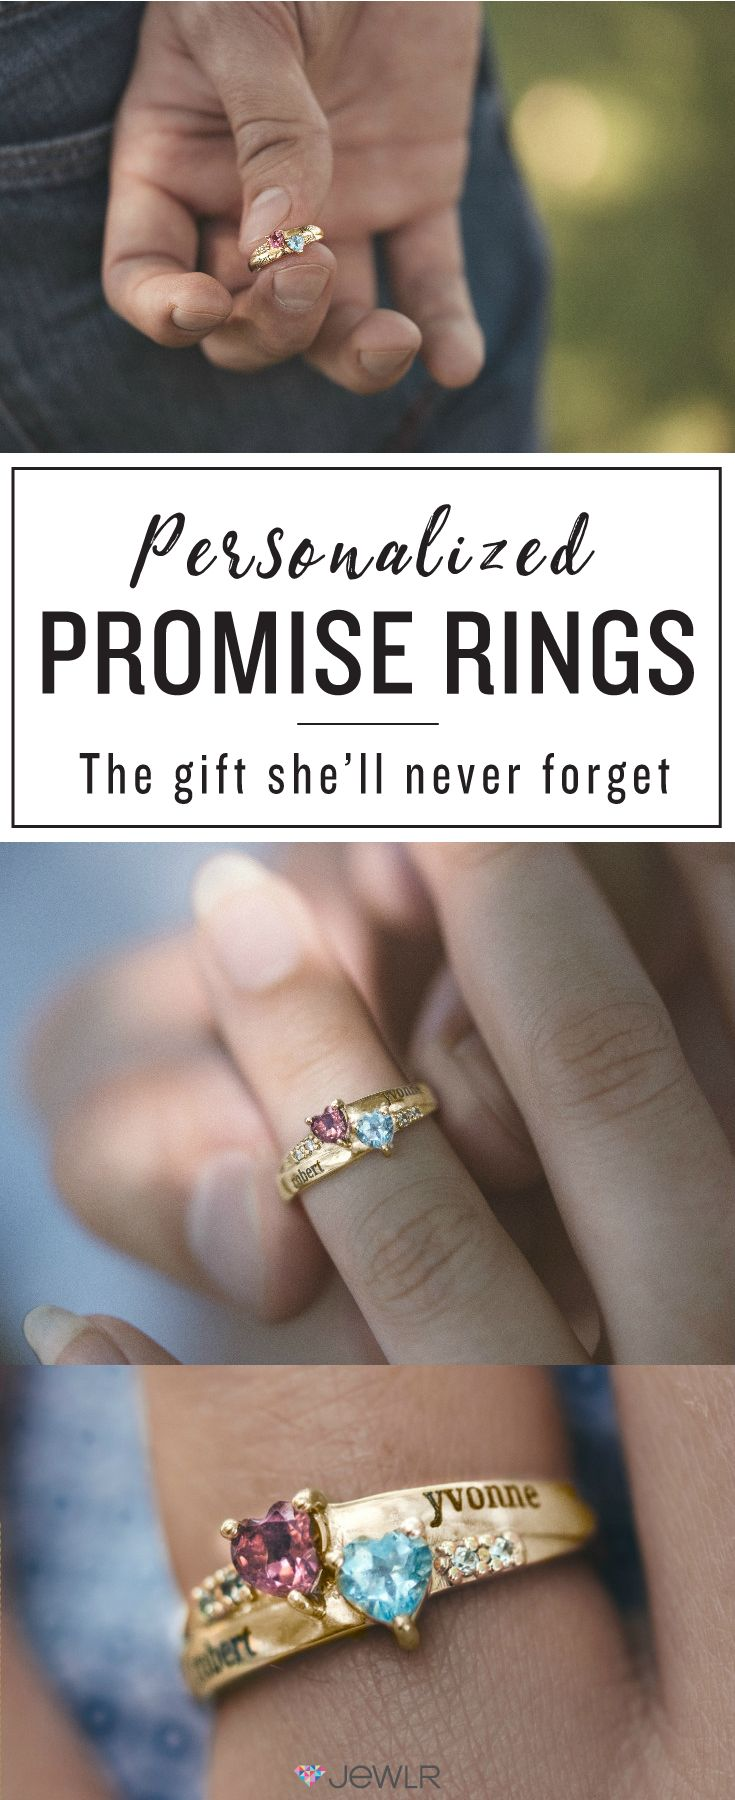 Only the best boyfriends shop at Jewlr! Suprise that special someone with a personalized promise ring, custom-made just for them. Personalize your ring in sterling silver, white, yellow or rose gold with your choice of gemstones and engravings. Free shipping, free returns and a free bonus gift with every purchase!